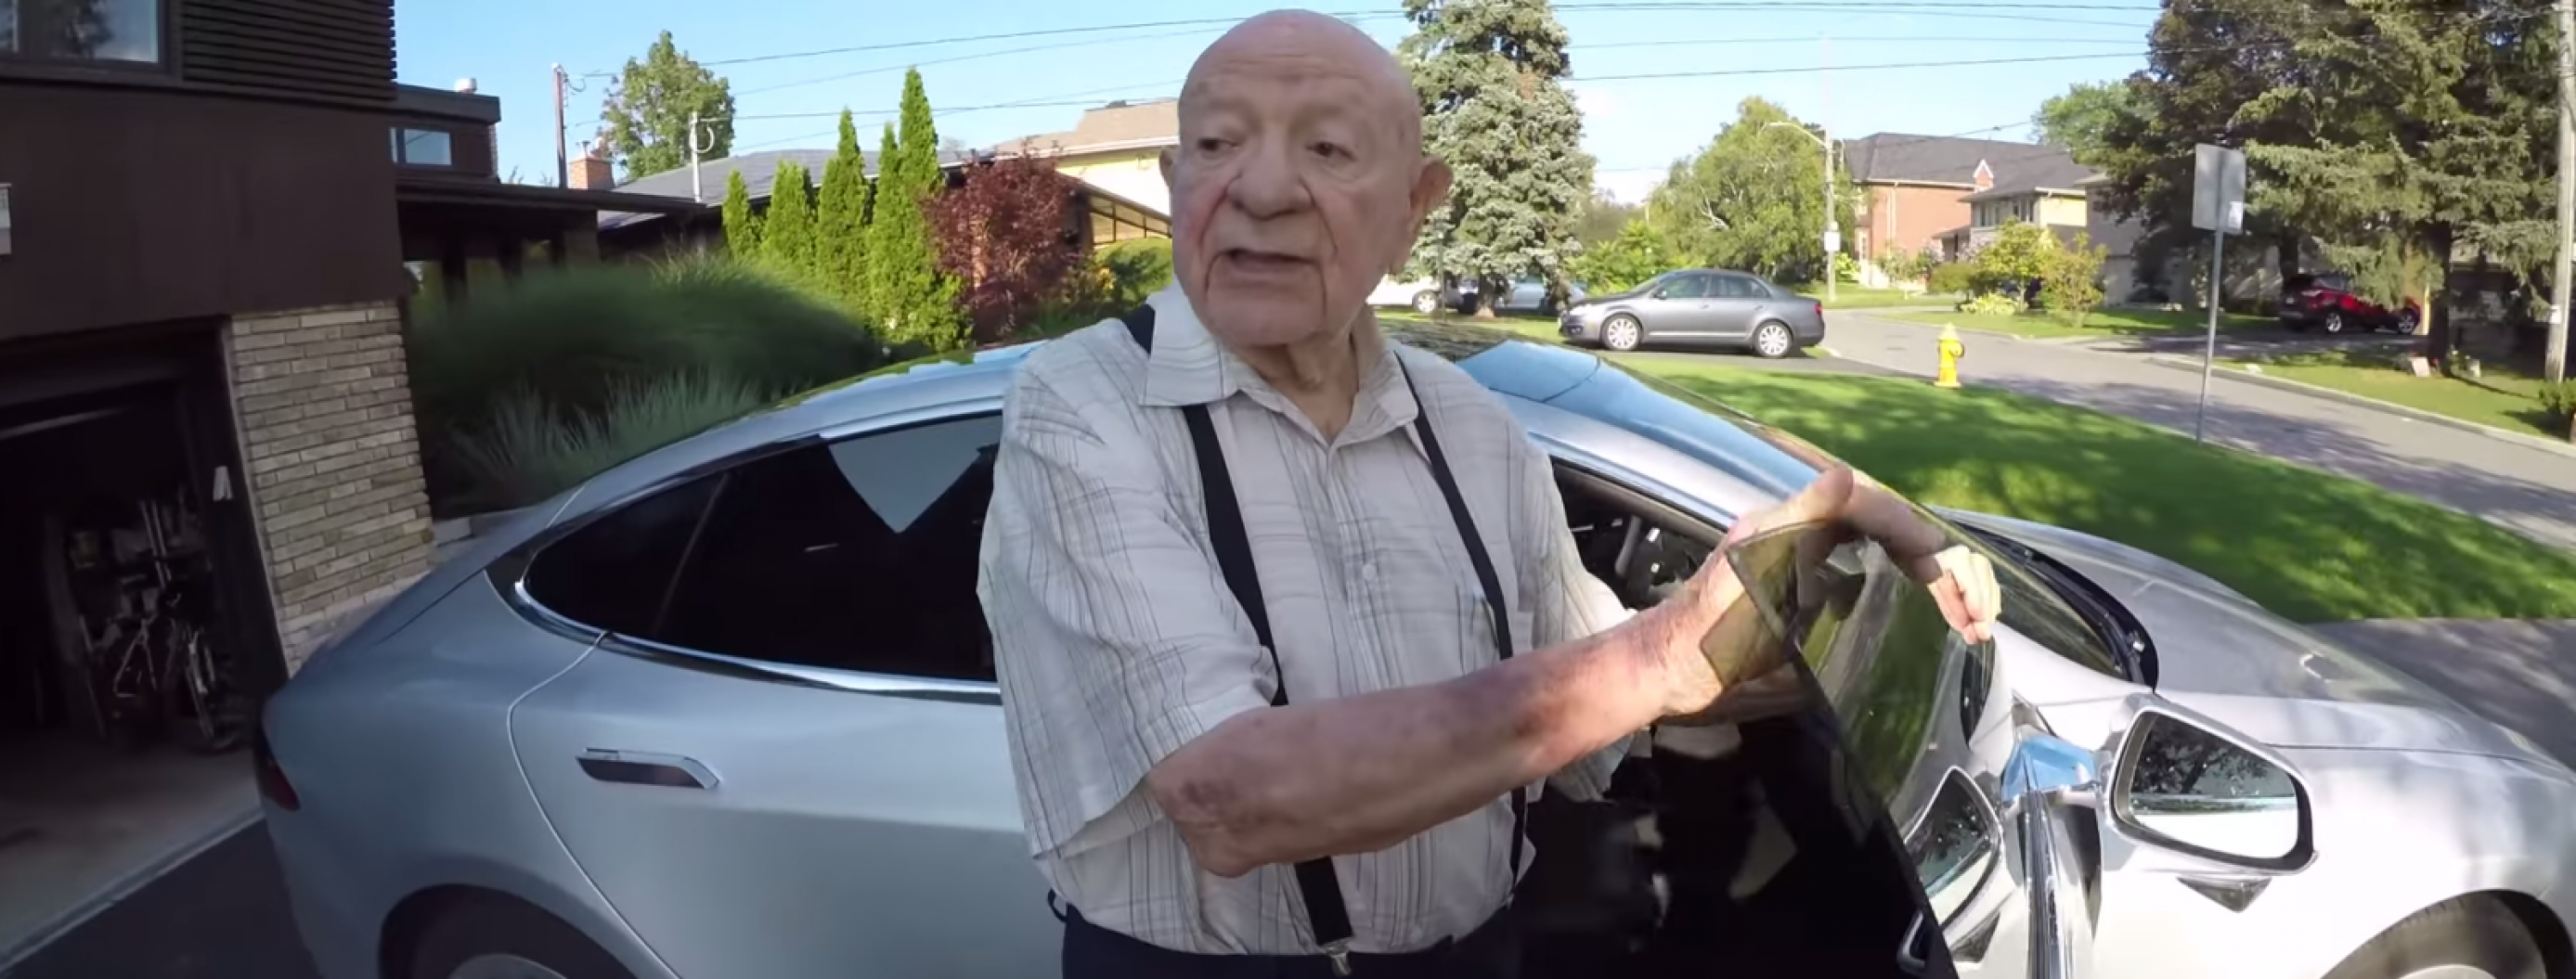 97-Year-Old Man Reacts to His Grandson's Futuristic Tesla Car